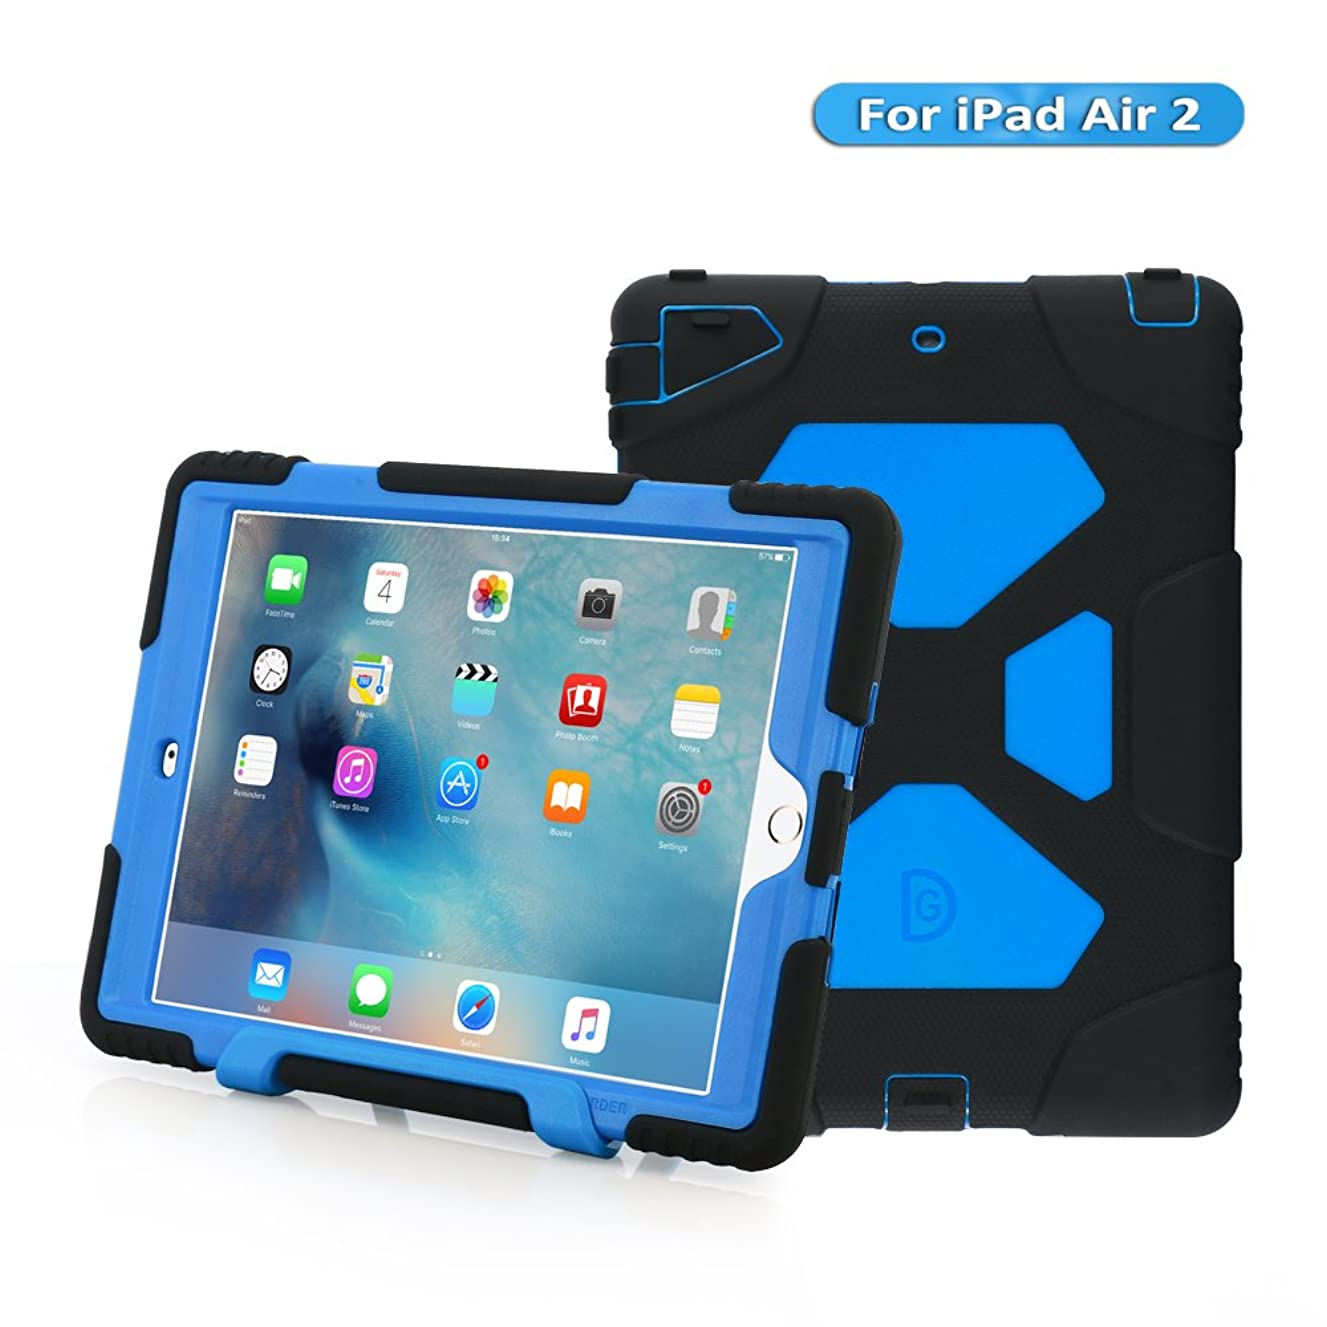 KIDSPR iPad Air 2 Case, IPad 6 Case, [Kids-Proof] [Shockproof] [Scratch Proof] [Drop Resistance] [Impact Resistant] Super Protection Cover Case with Stand for iPad Air 2 Tablet(2014)(Black/Blue)